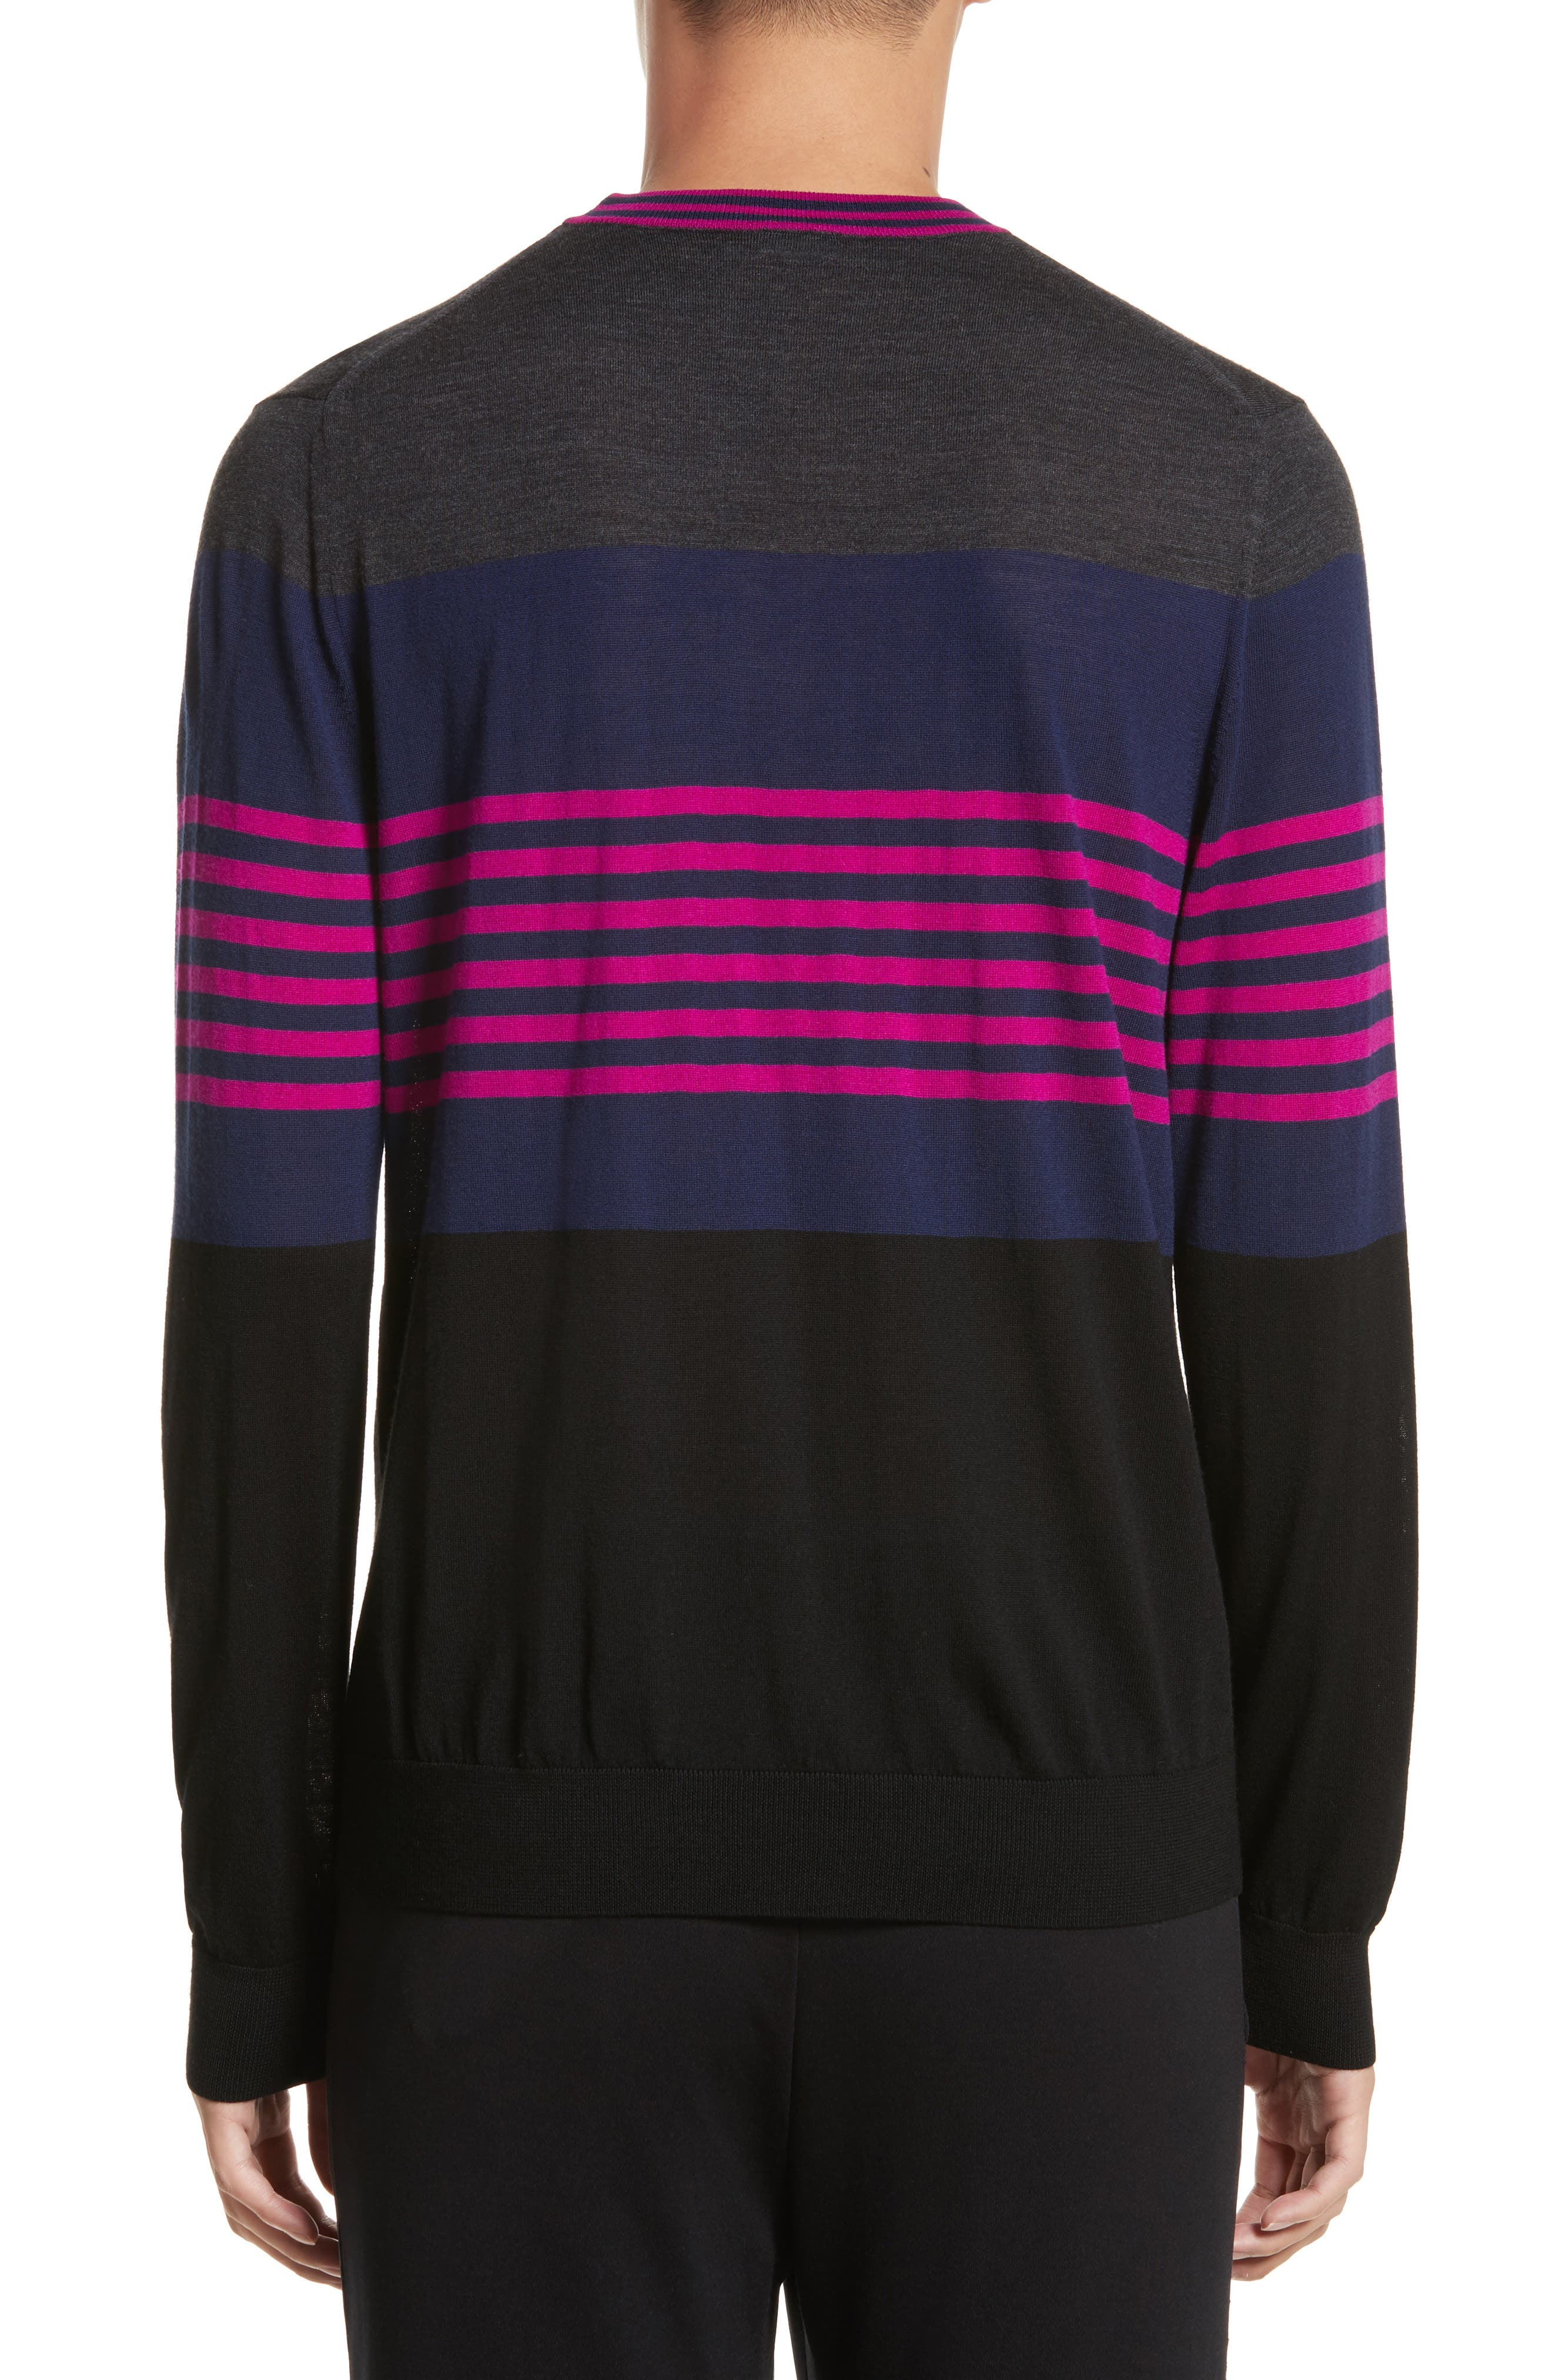 Stripe Merino Wool Crewneck Sweater,                             Alternate thumbnail 2, color,                             Grey Multi